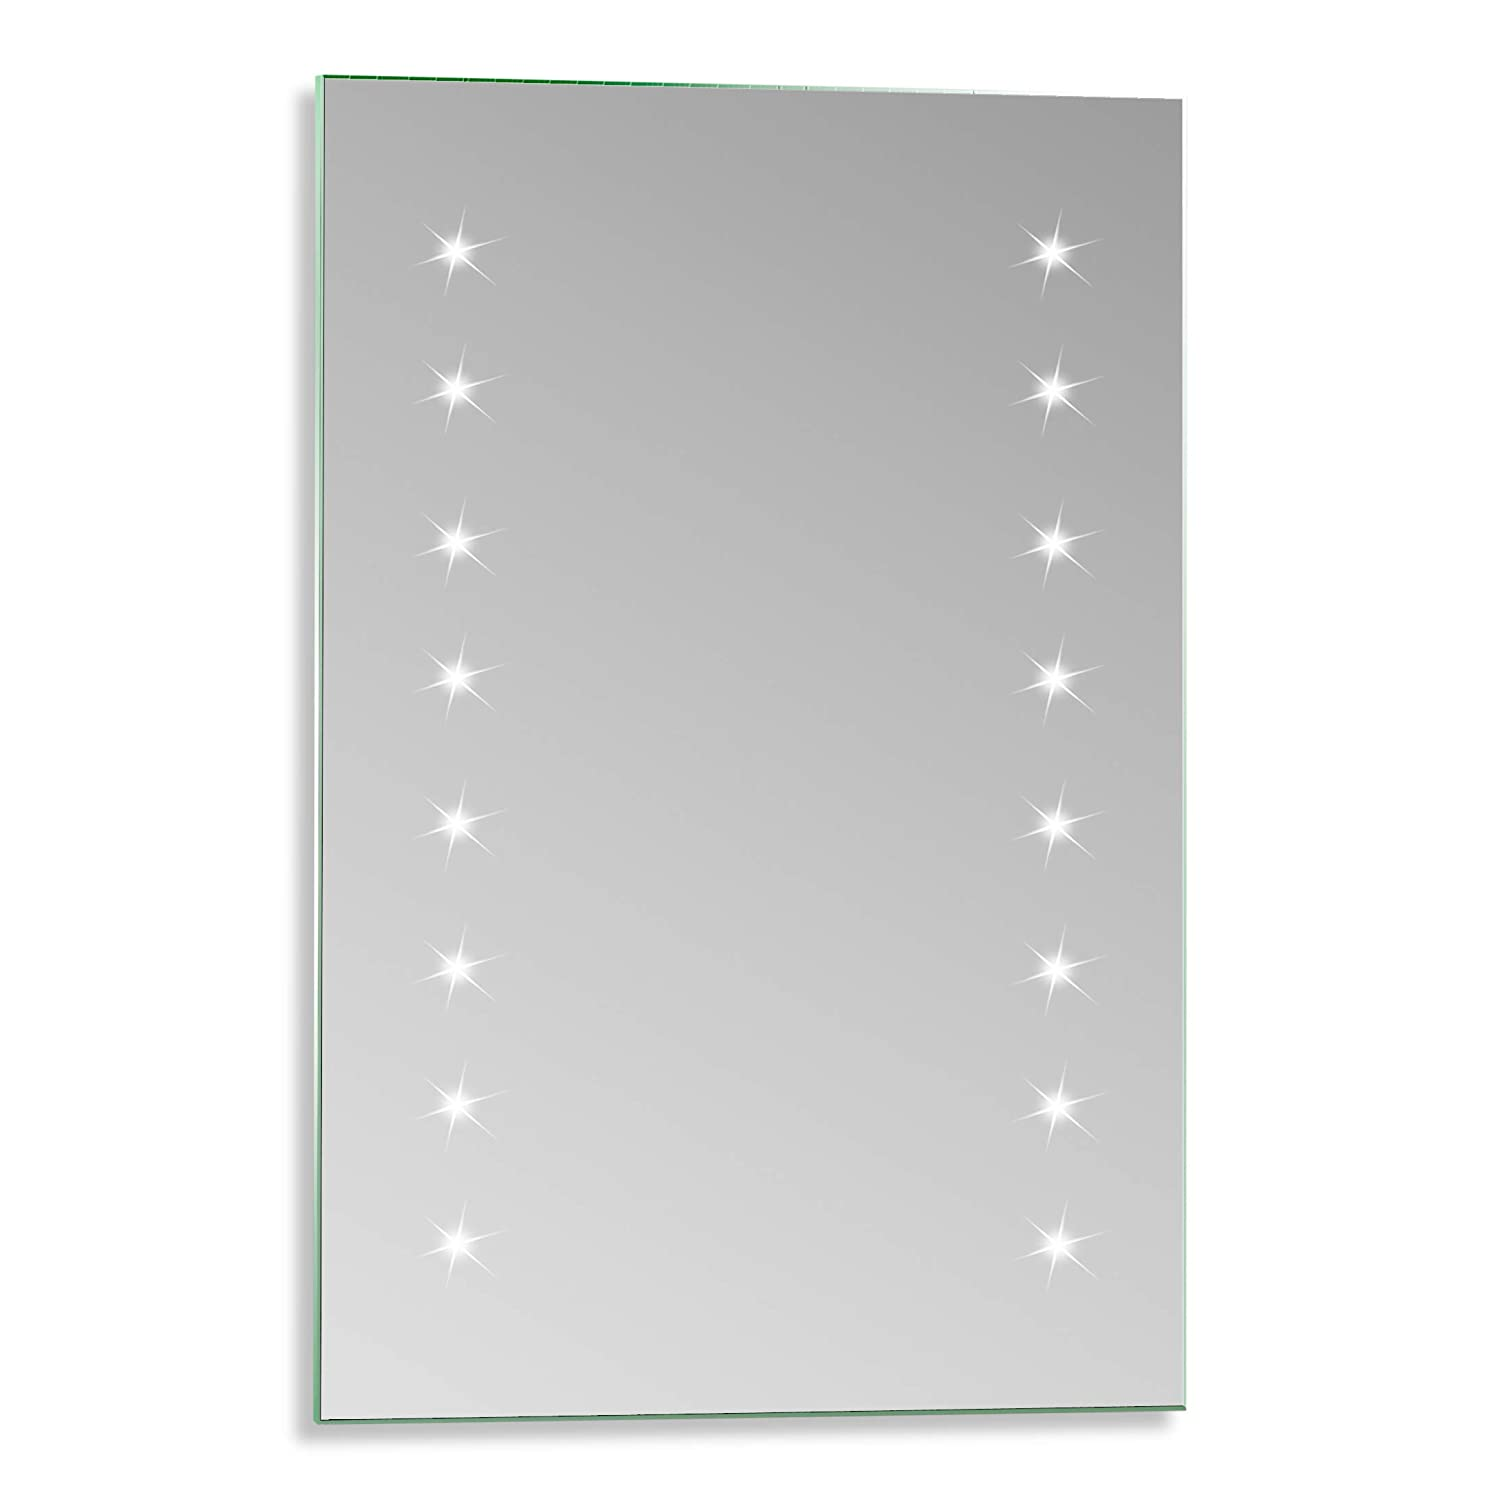 Neue Design LED Battery Bathroom Mirror Illuminated Fully Certified to British Standards 60cm x 40cm Aluminium Frame With Lights